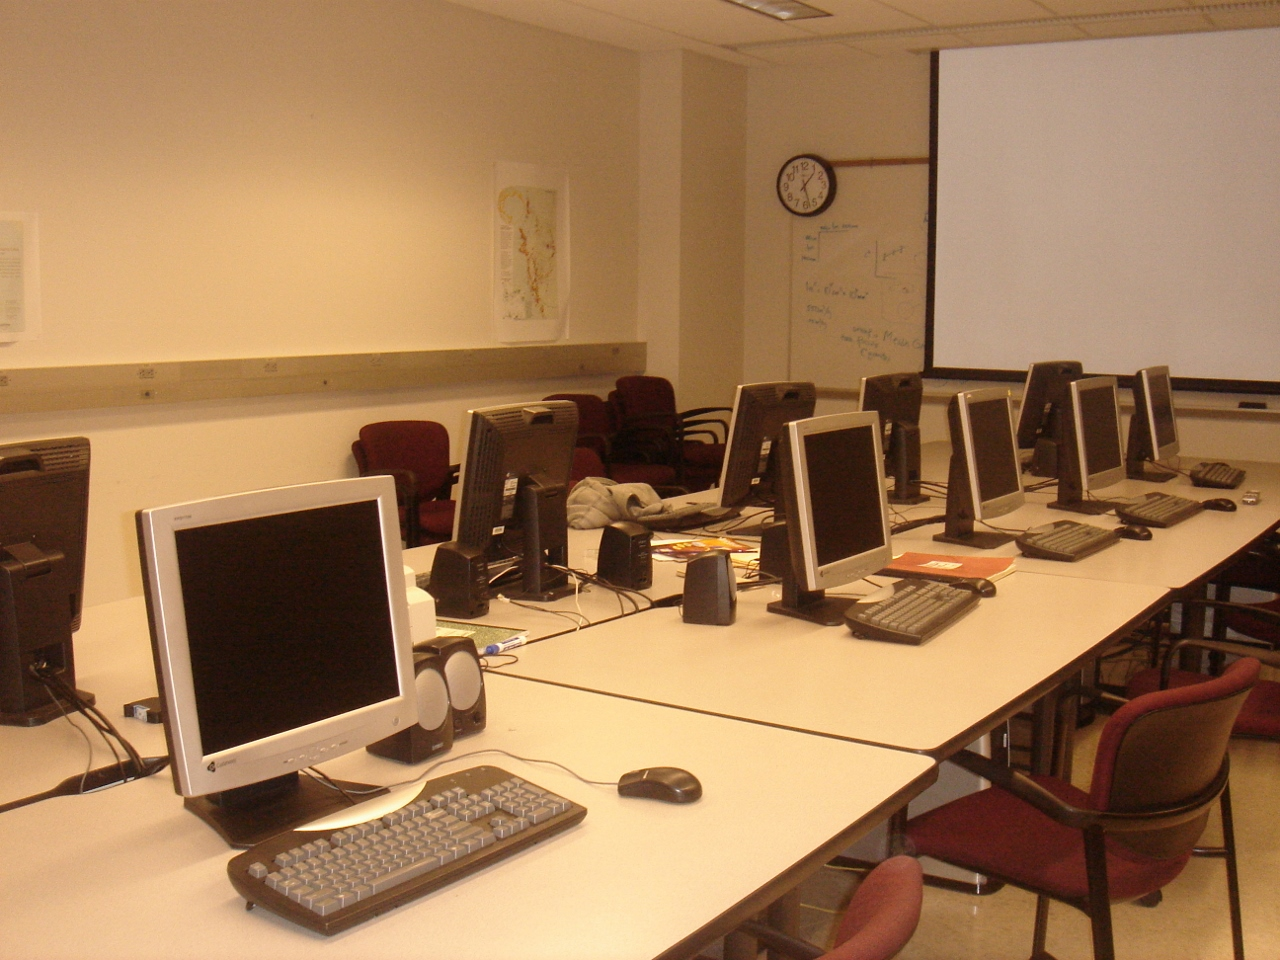 computers in the Geographic Information Systems lab